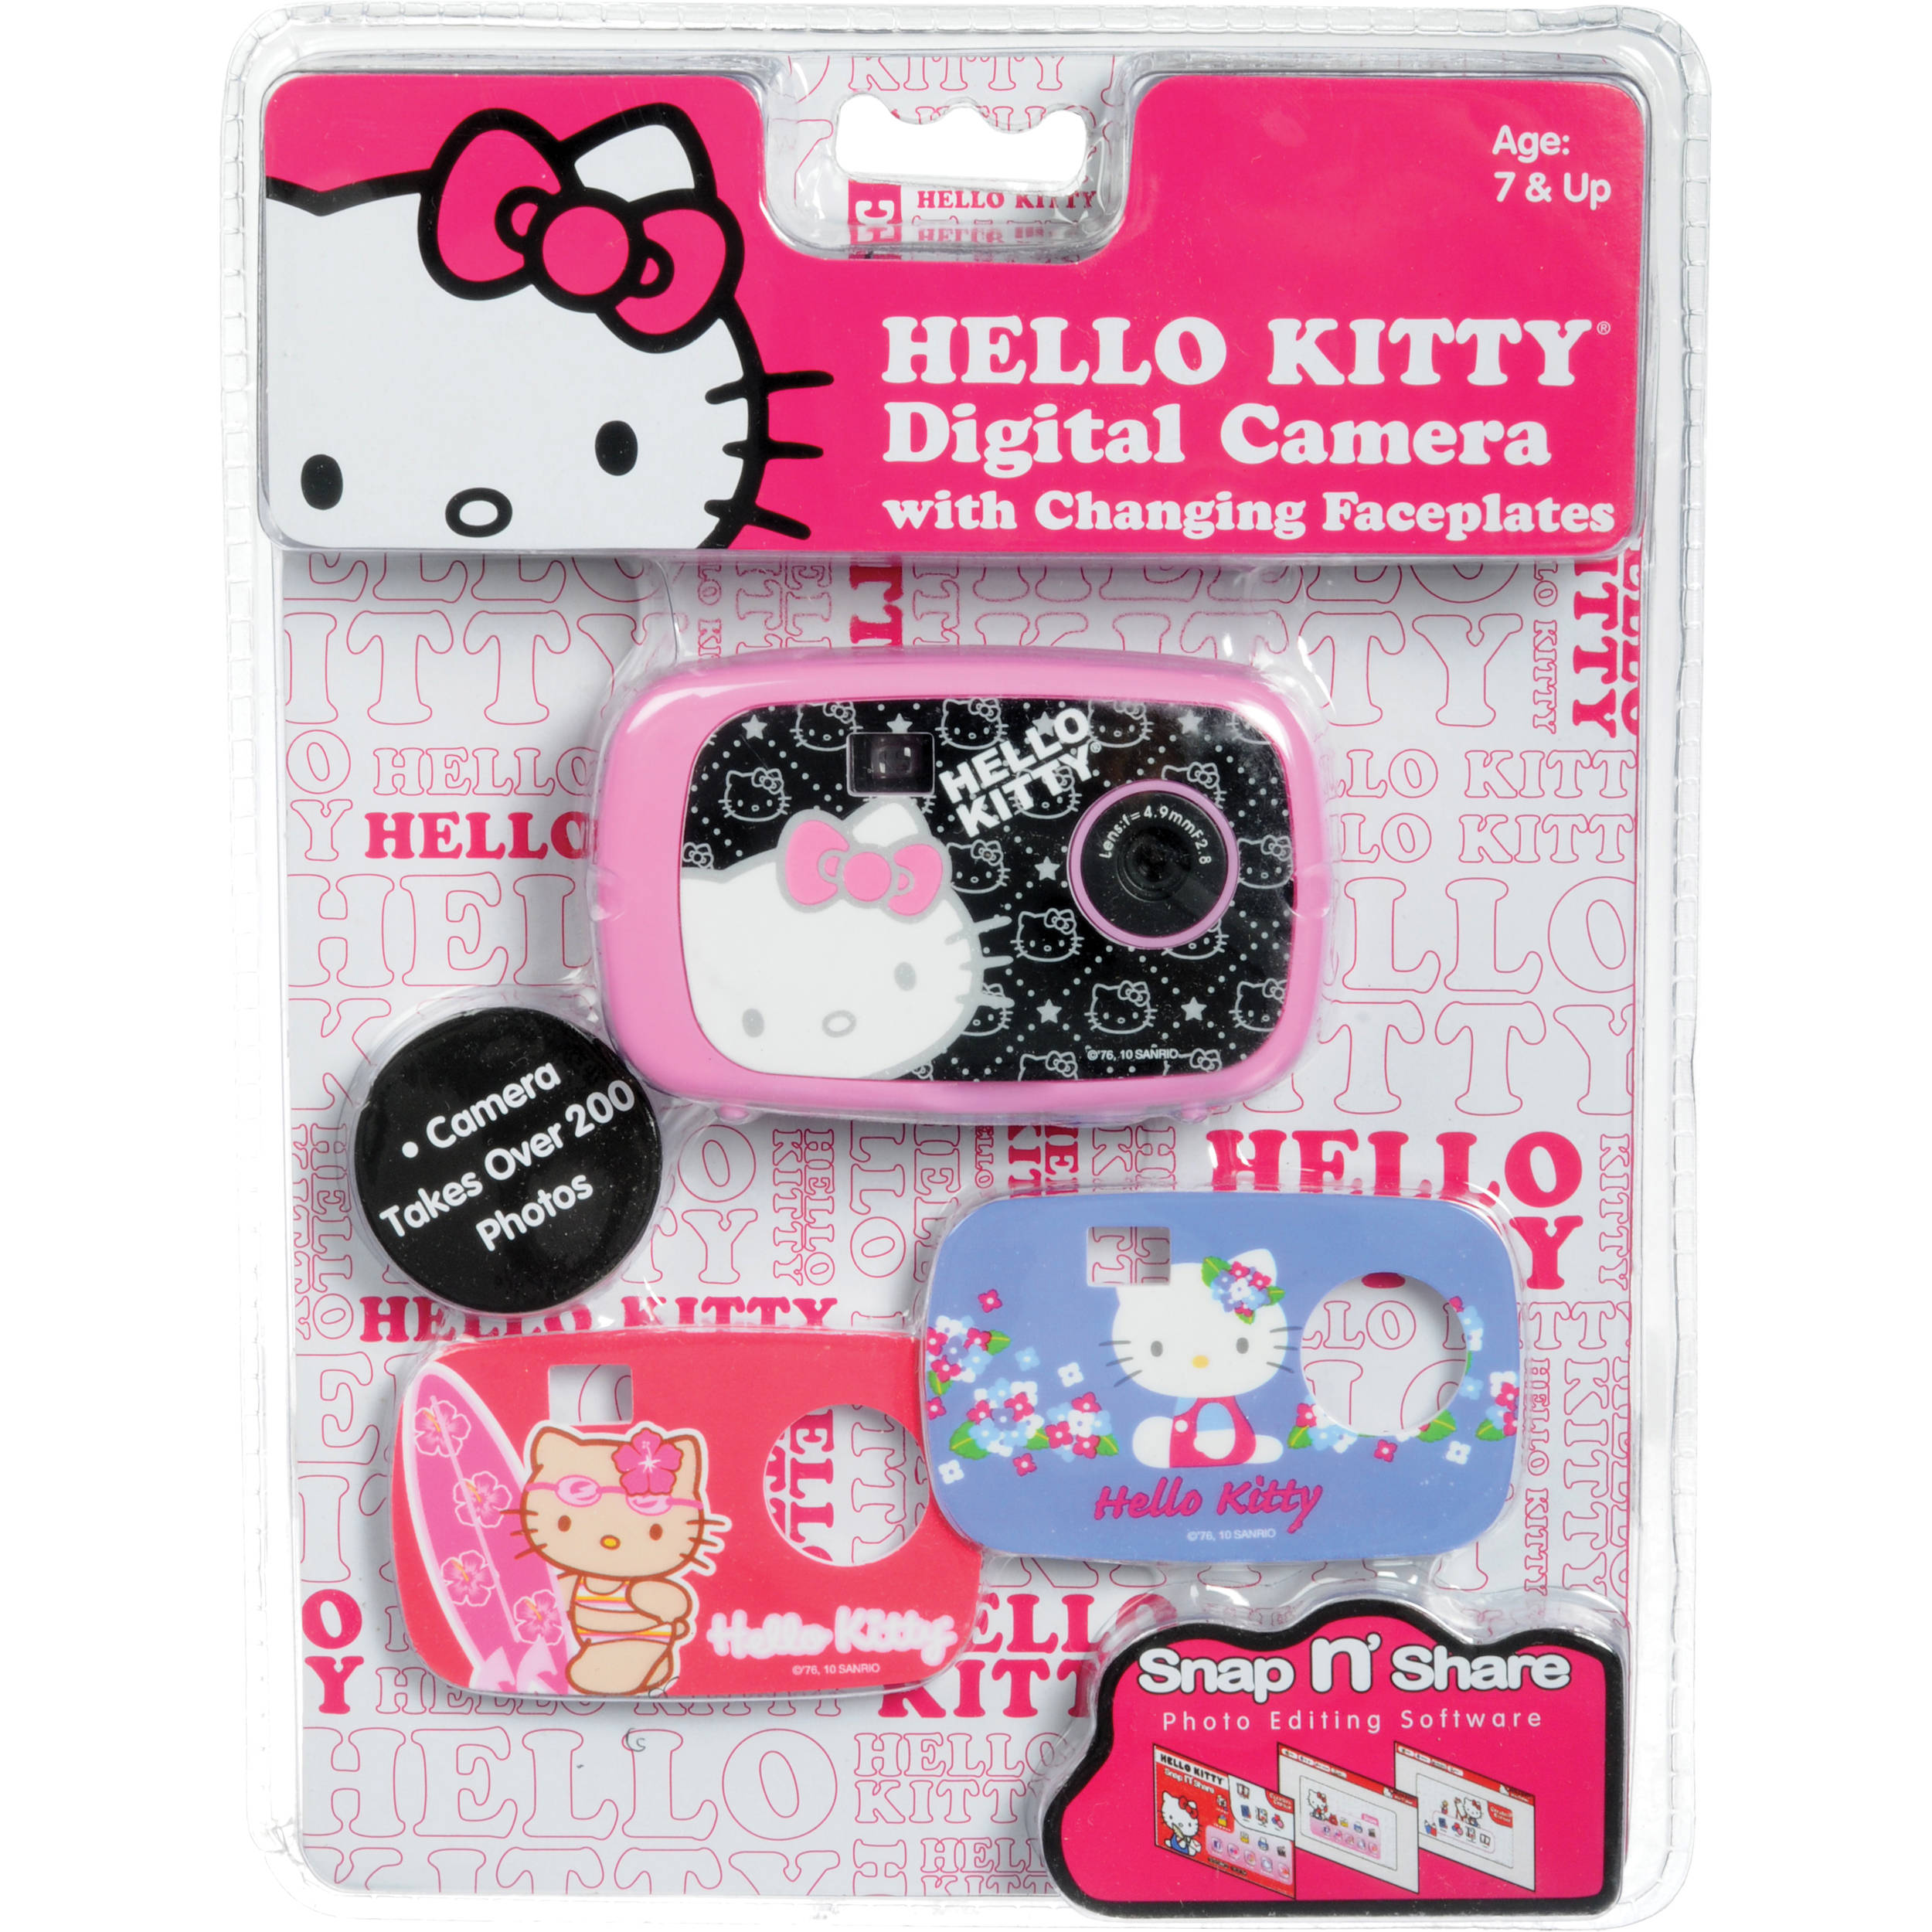 Camera digital hello kitty